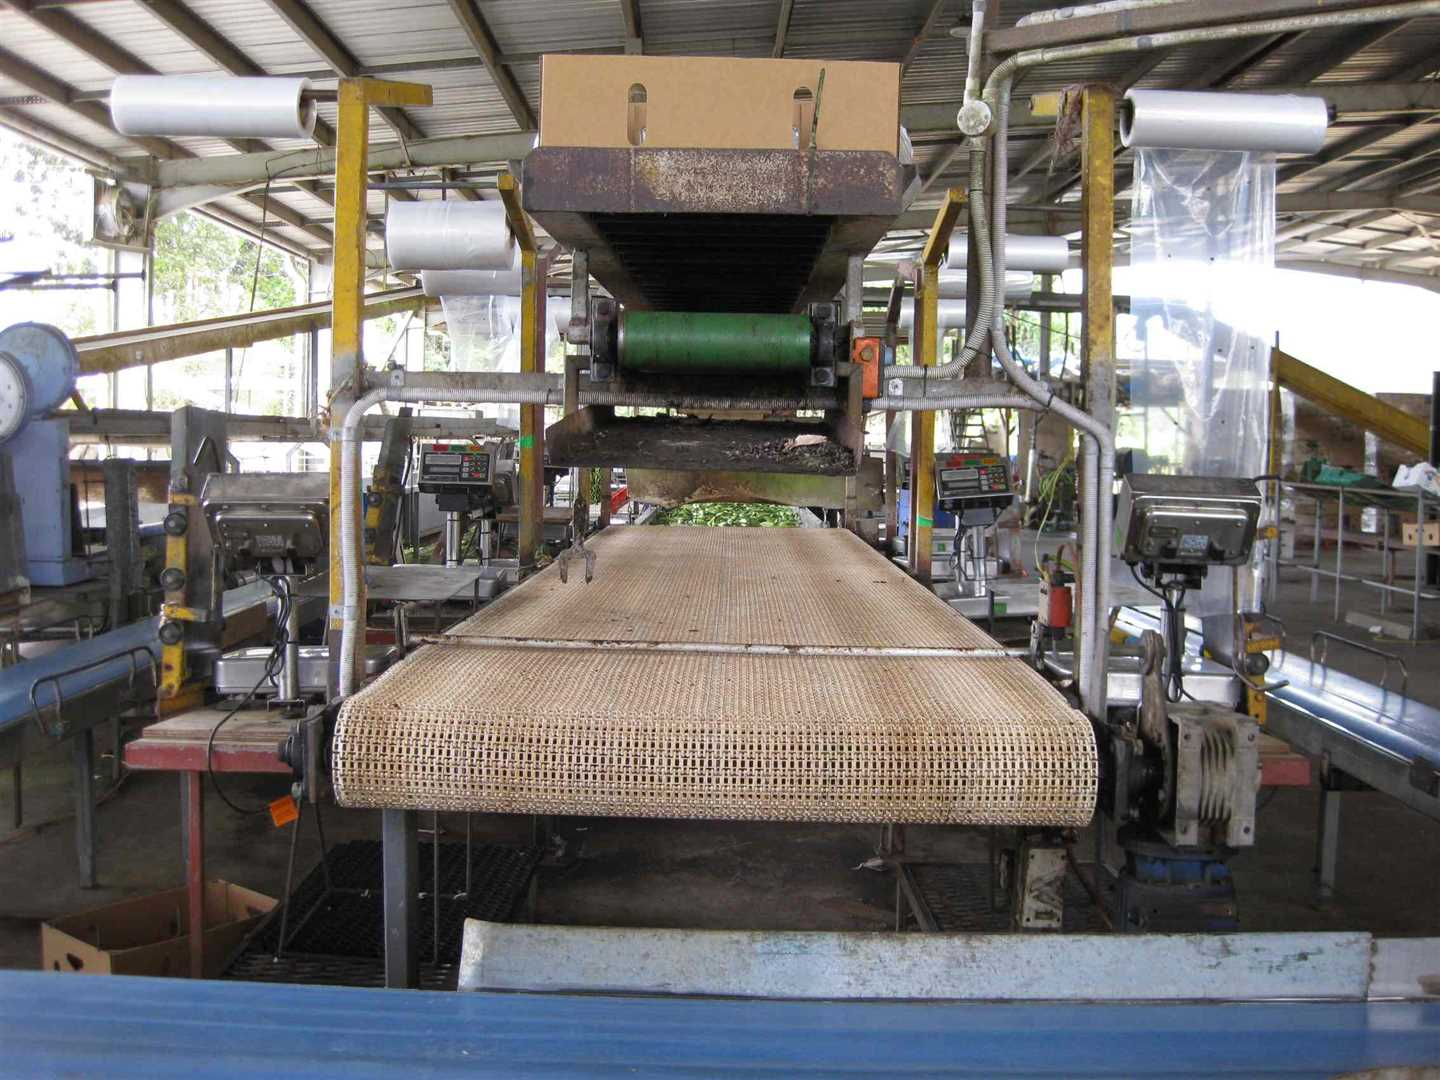 View of part of inside packing shed showing part of packing area and scales